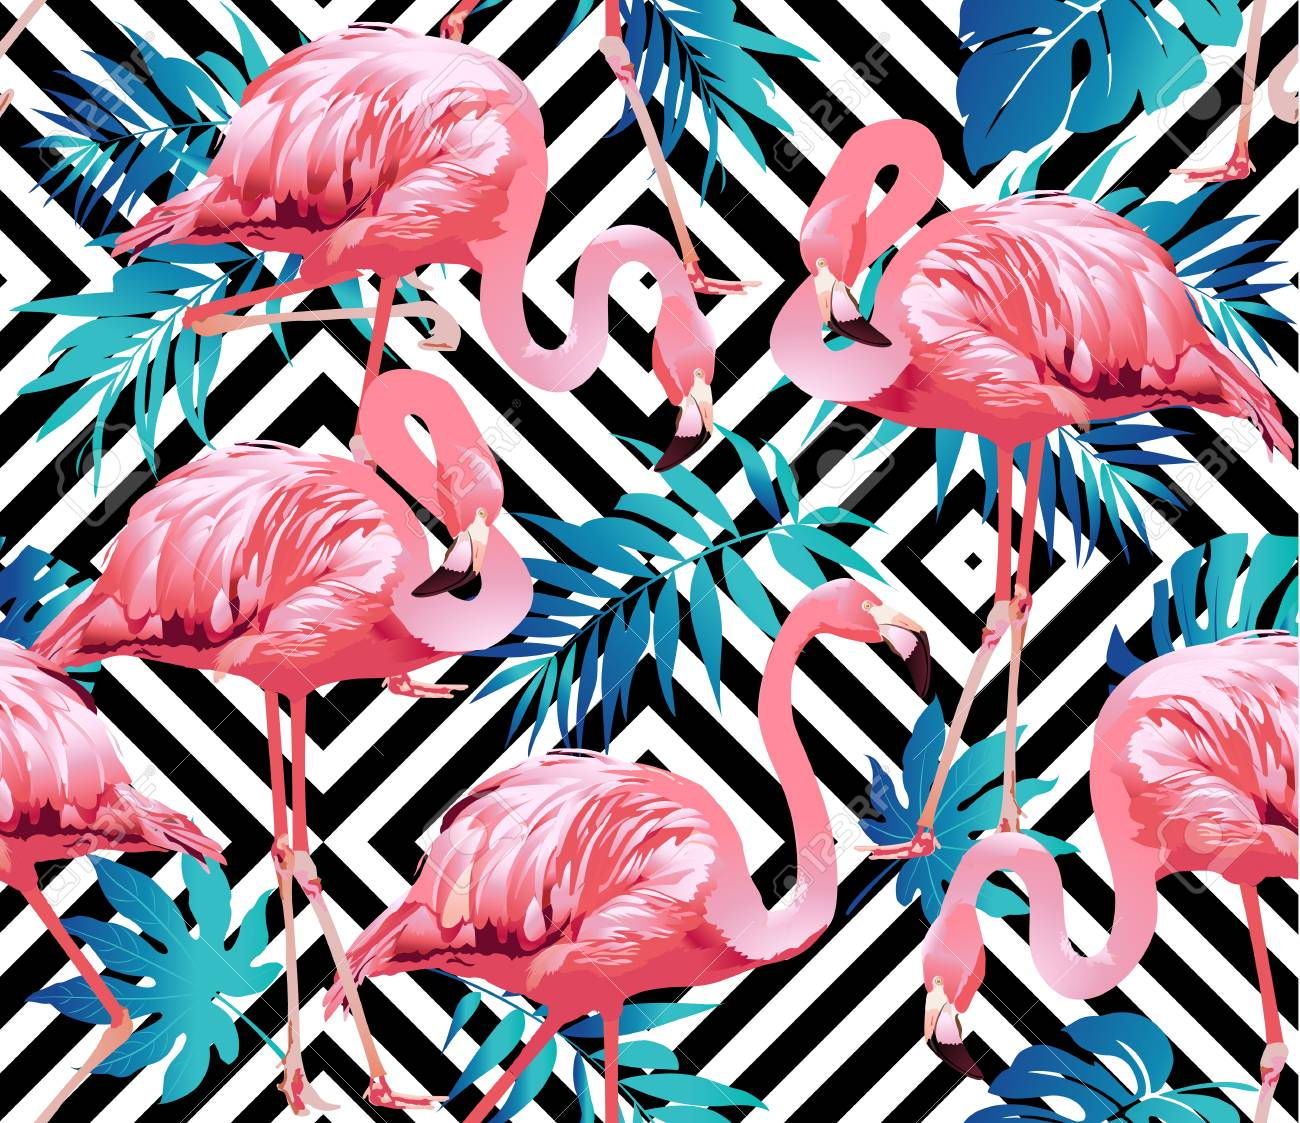 Flamingo Bird and Tropical Flowers Background - Seamless pattern vector - 74413701